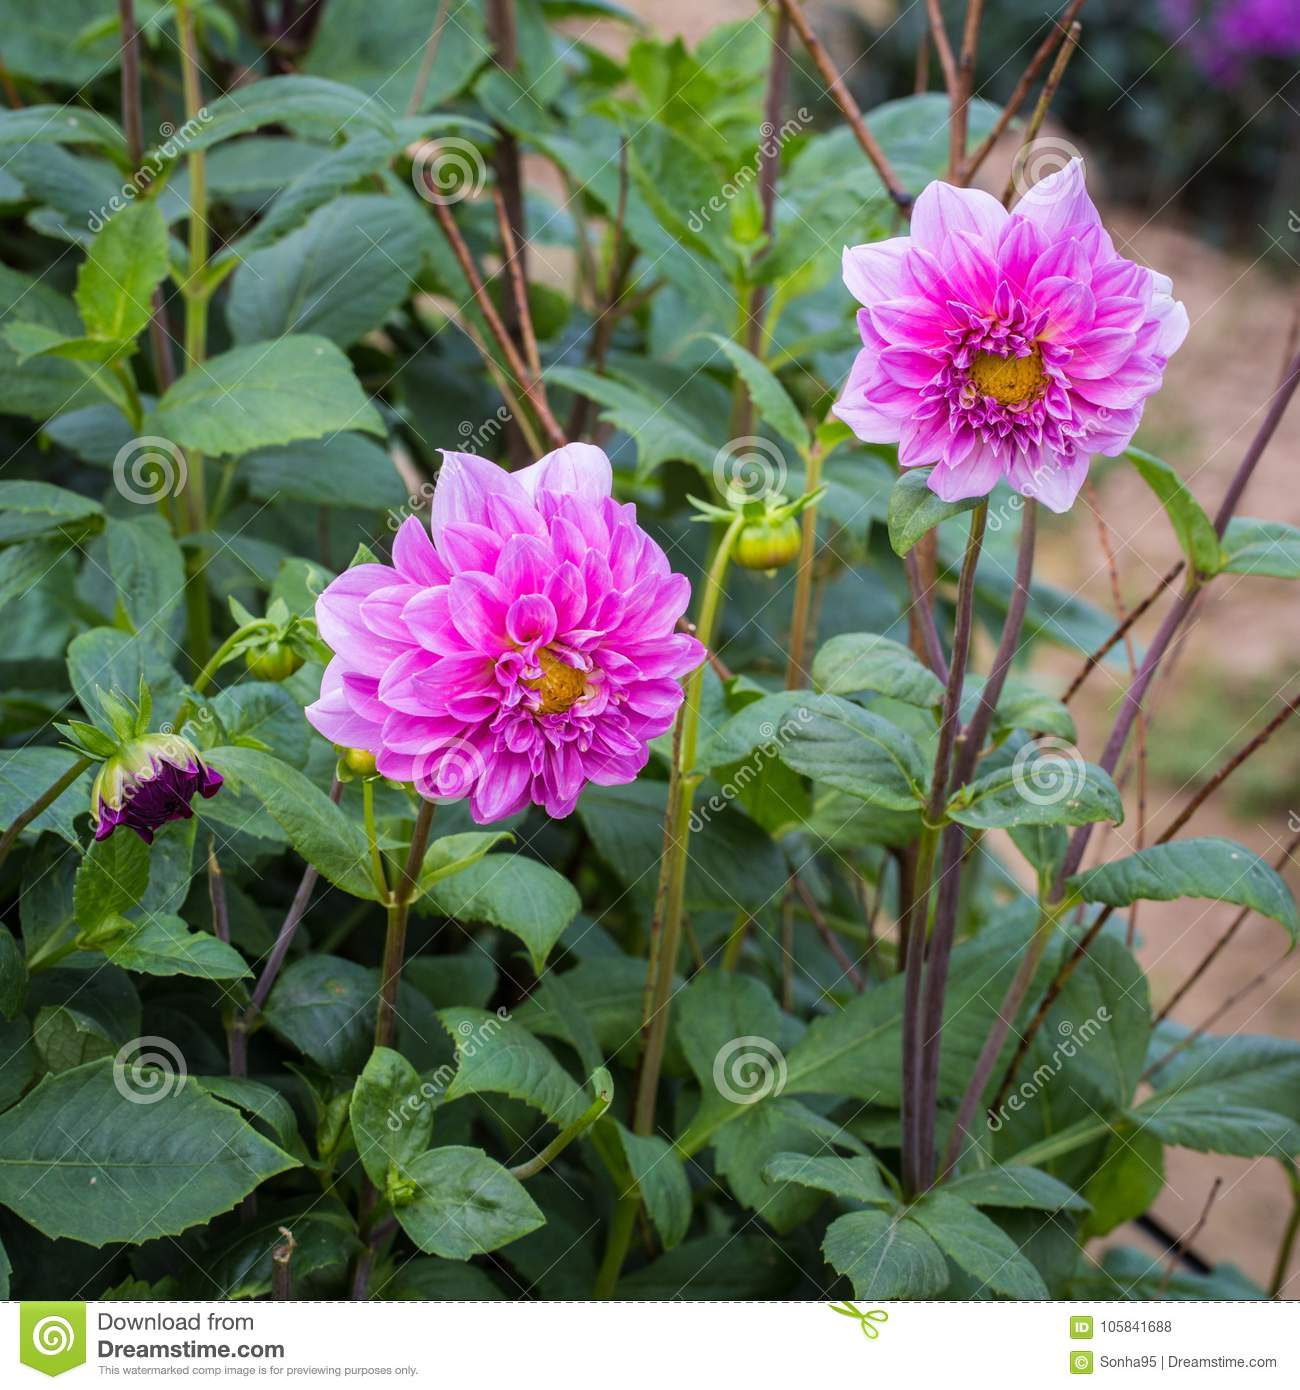 Dahlia stock photo image of colored spring rous exception dahlia is a genus of bushy tube rous herbaceous perennial plants they are brightly colored displaying most hues with the exception of blue izmirmasajfo